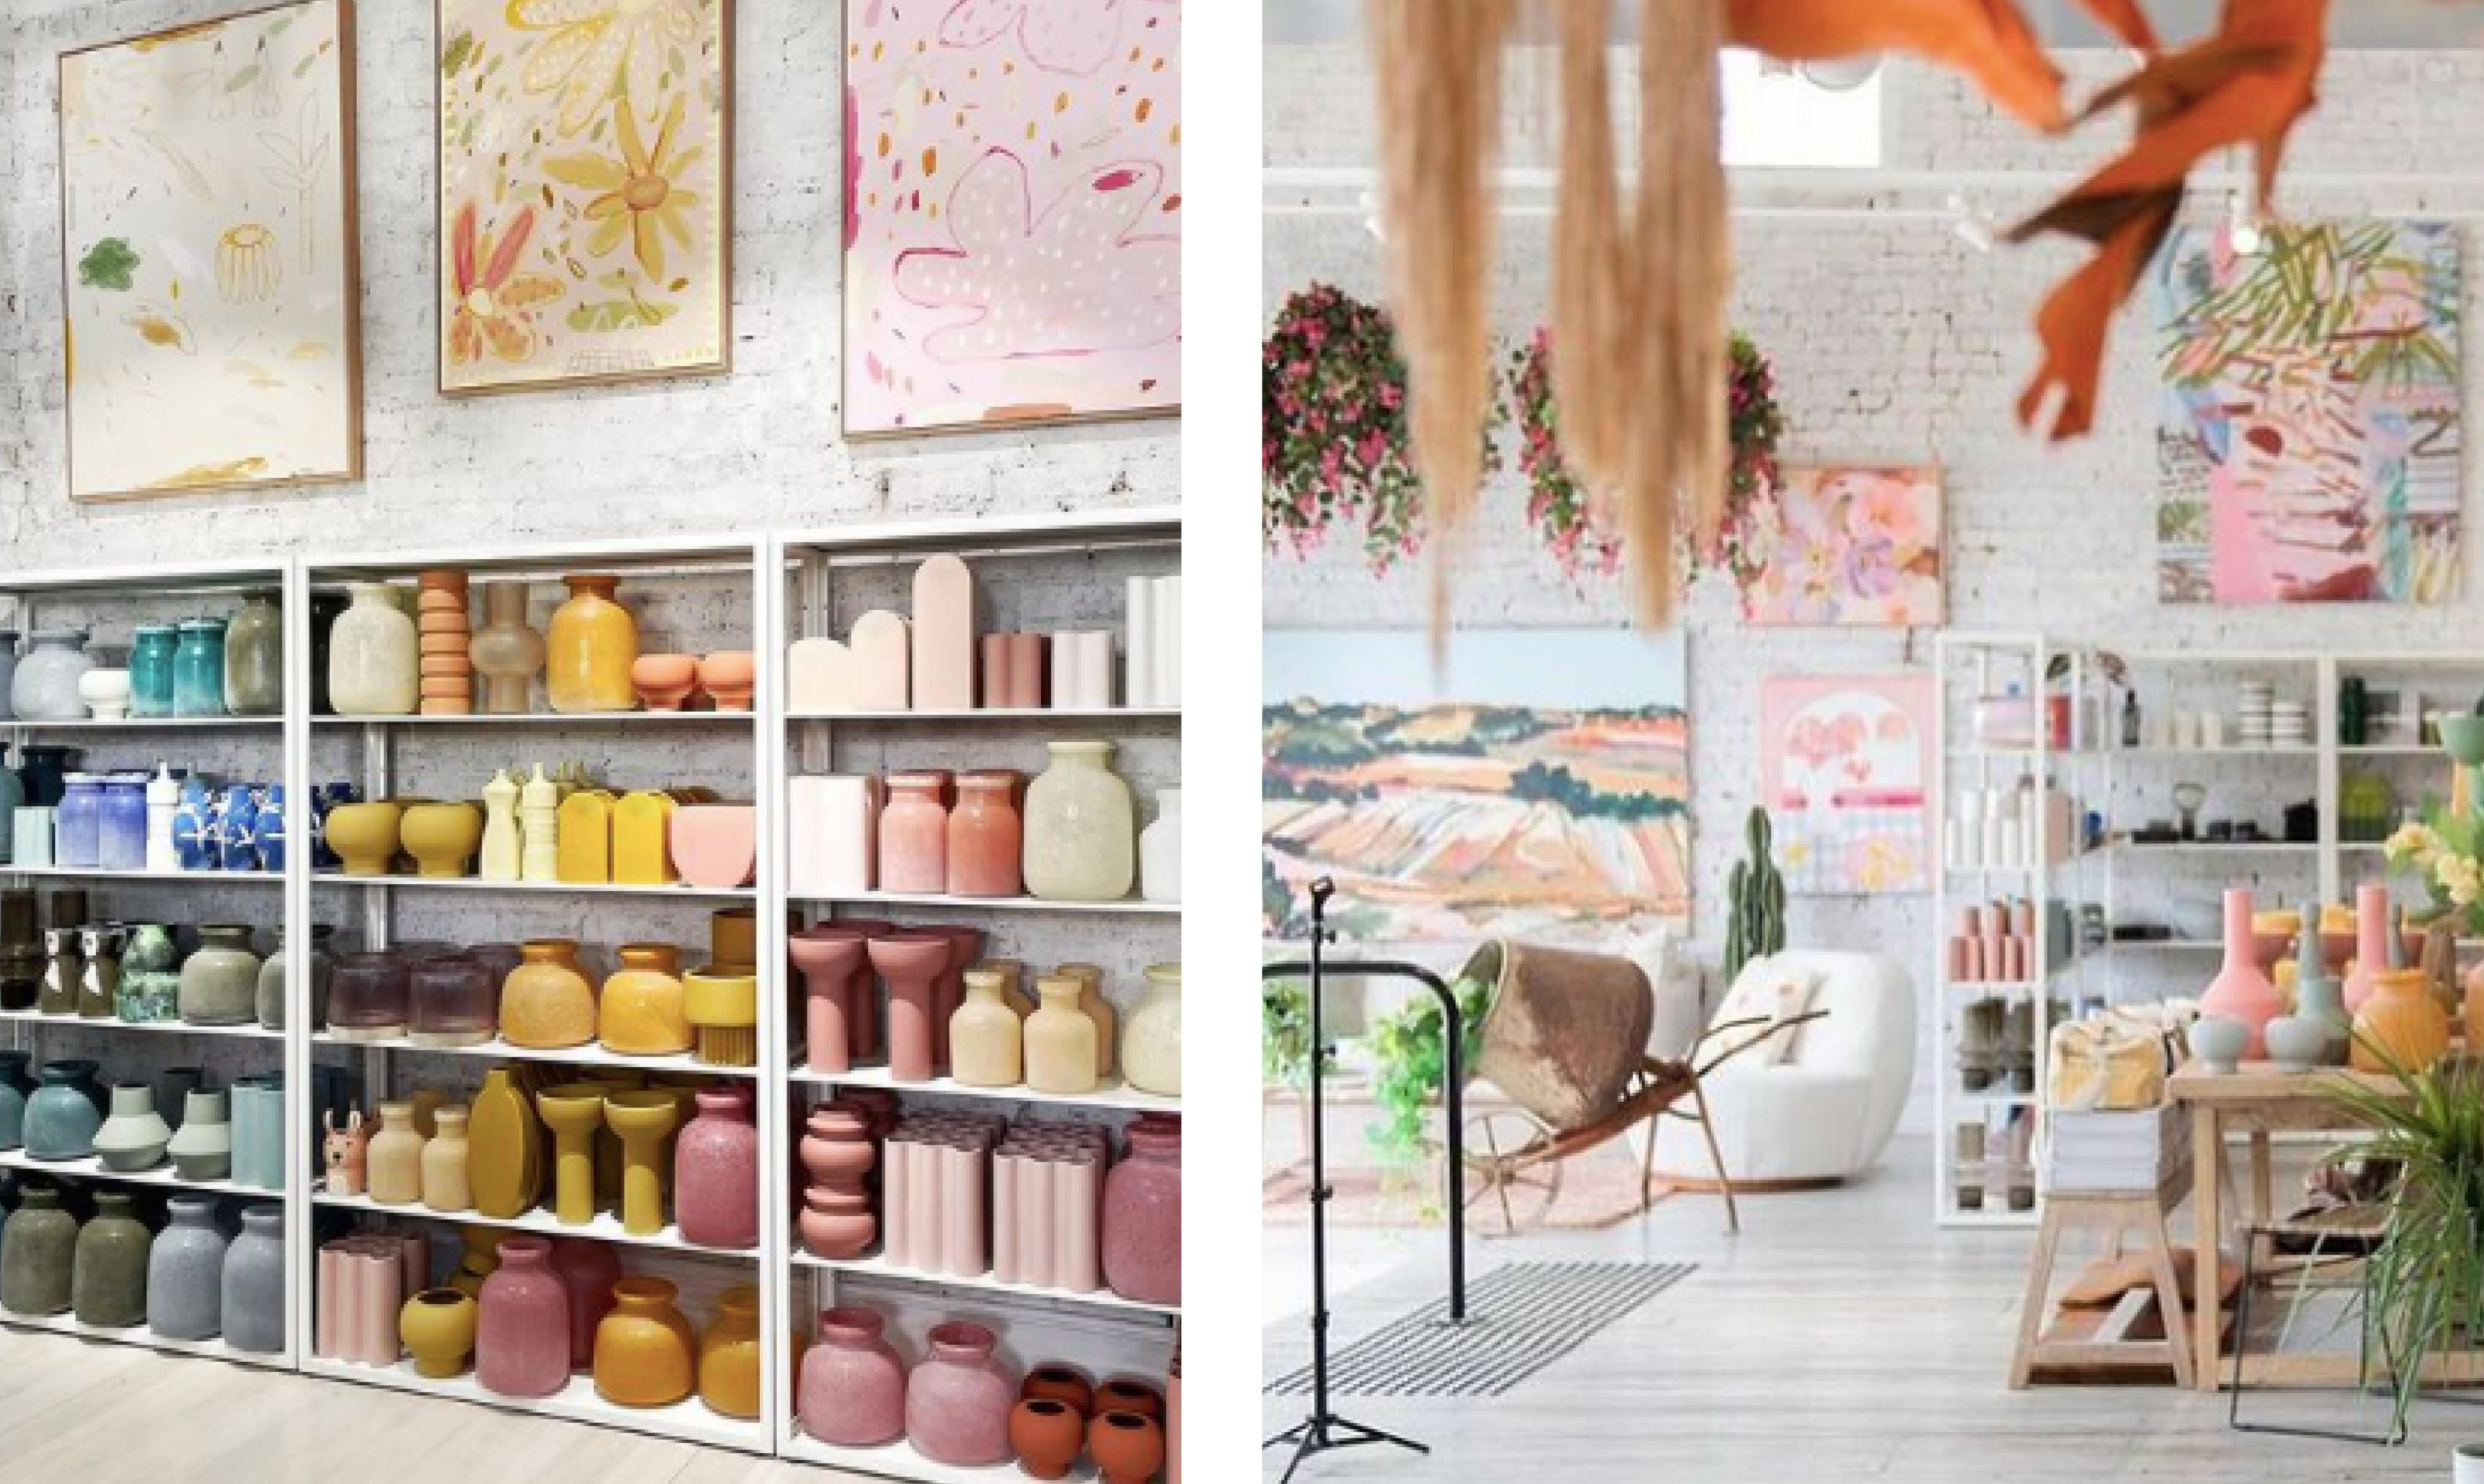 Stylish Stores in Stylish Towns